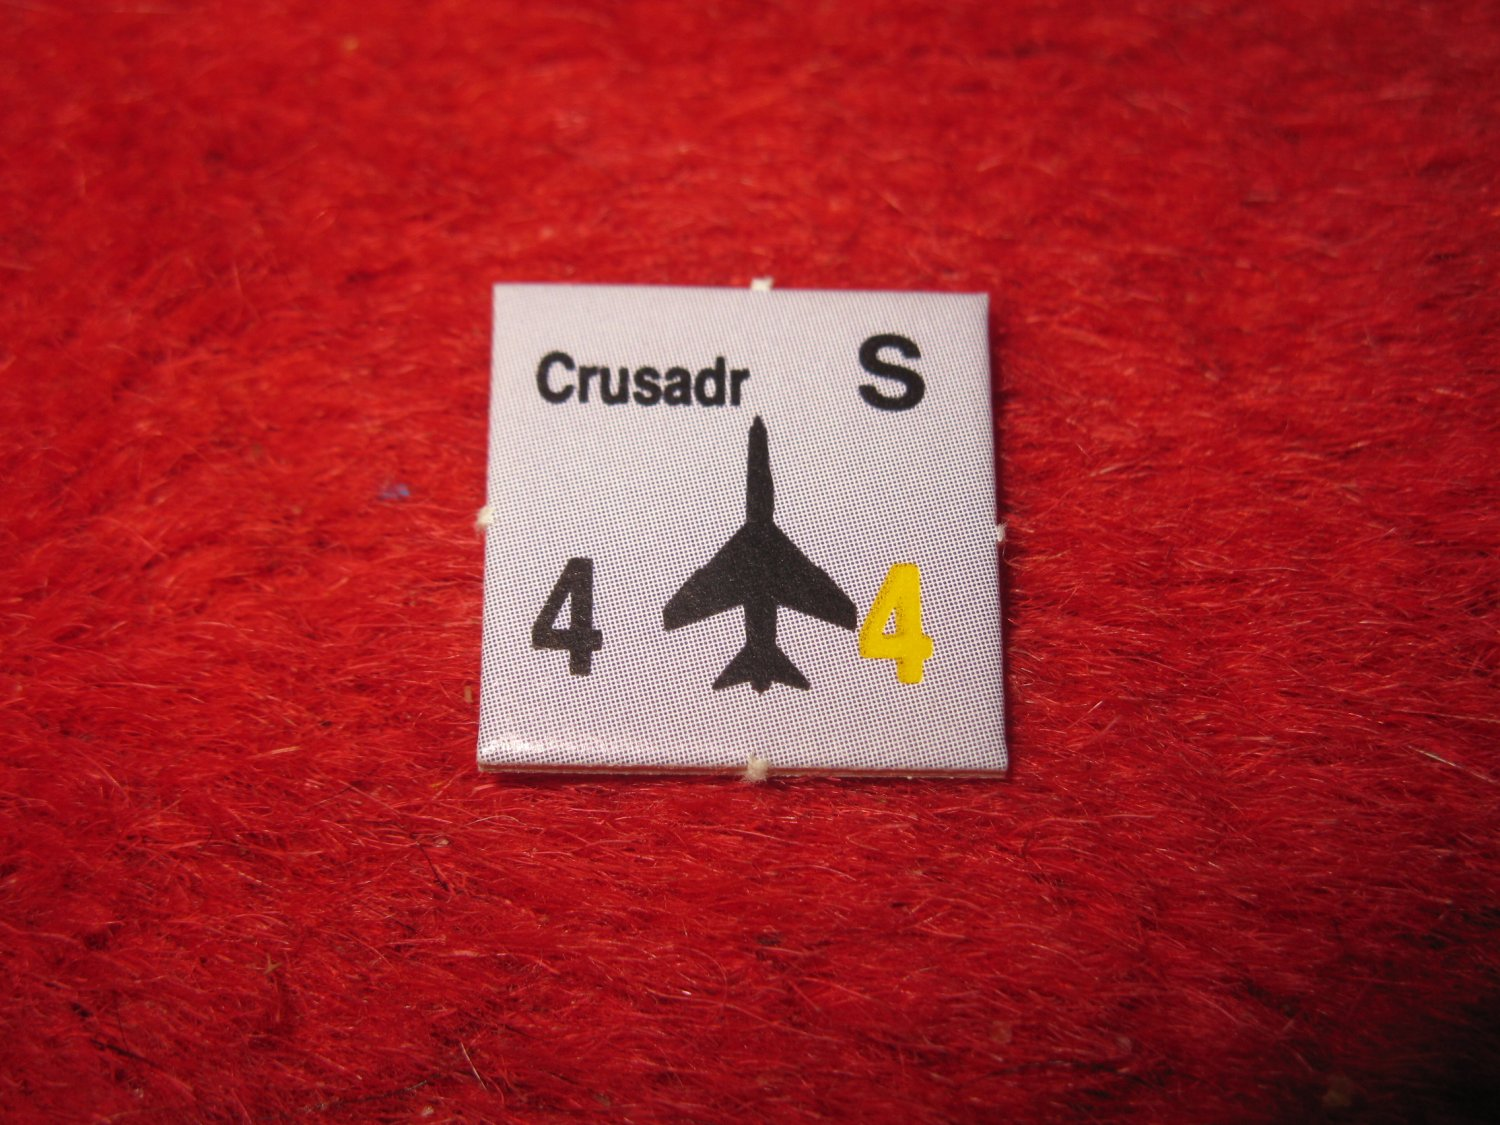 1988 The Hunt for Red October Board Game Piece: Crusadr blue Square Counter